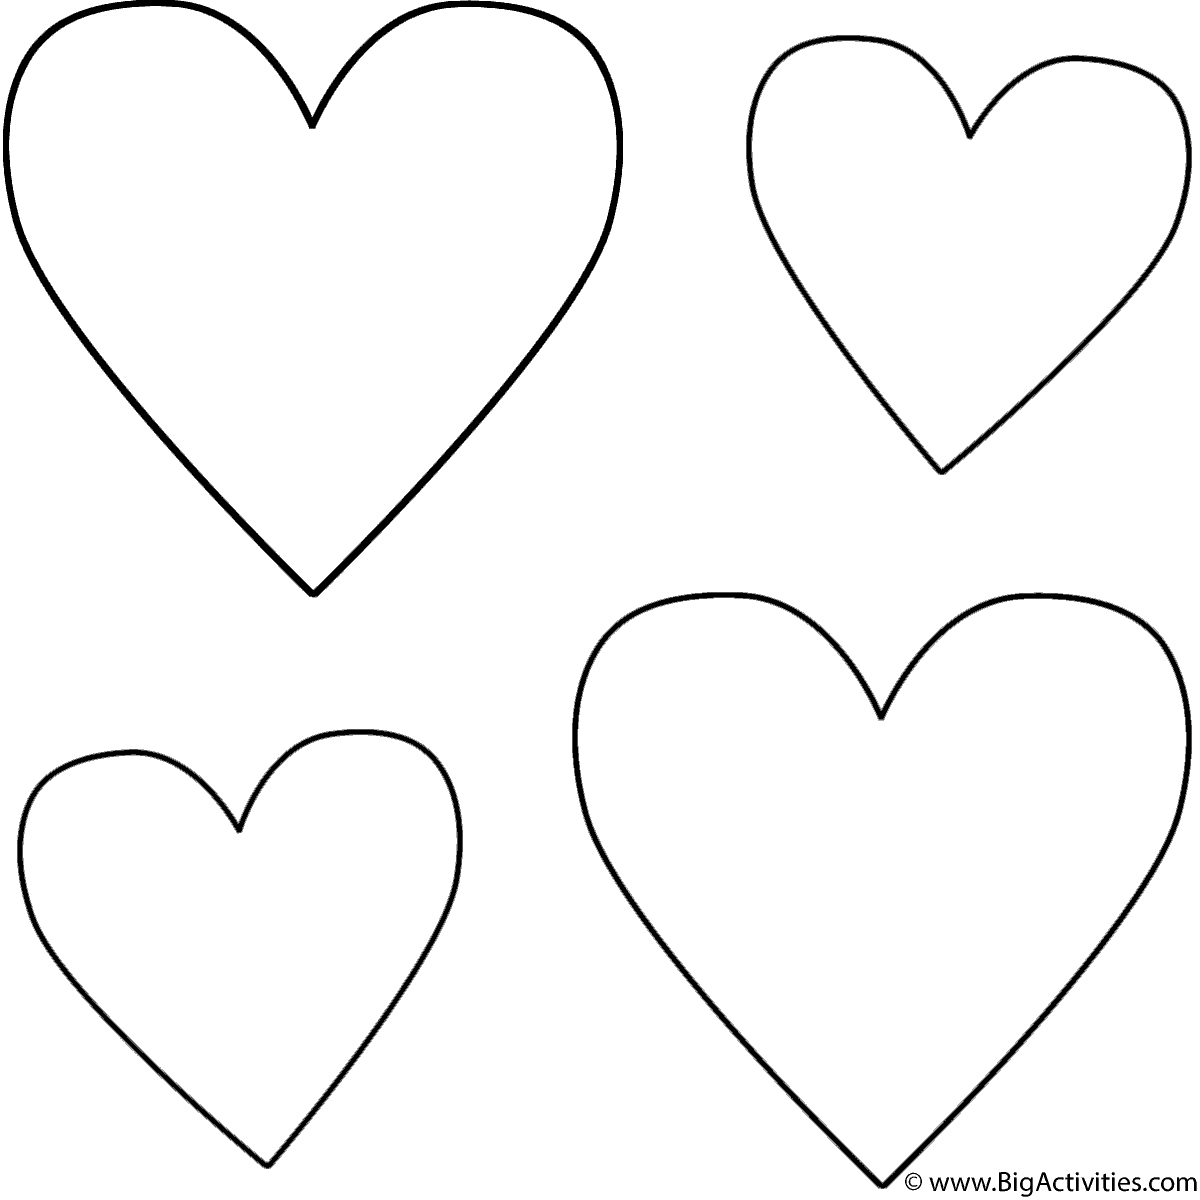 valentines day heart coloring pages sure fire valentine hearts to color simplistic images coloring day heart valentines pages